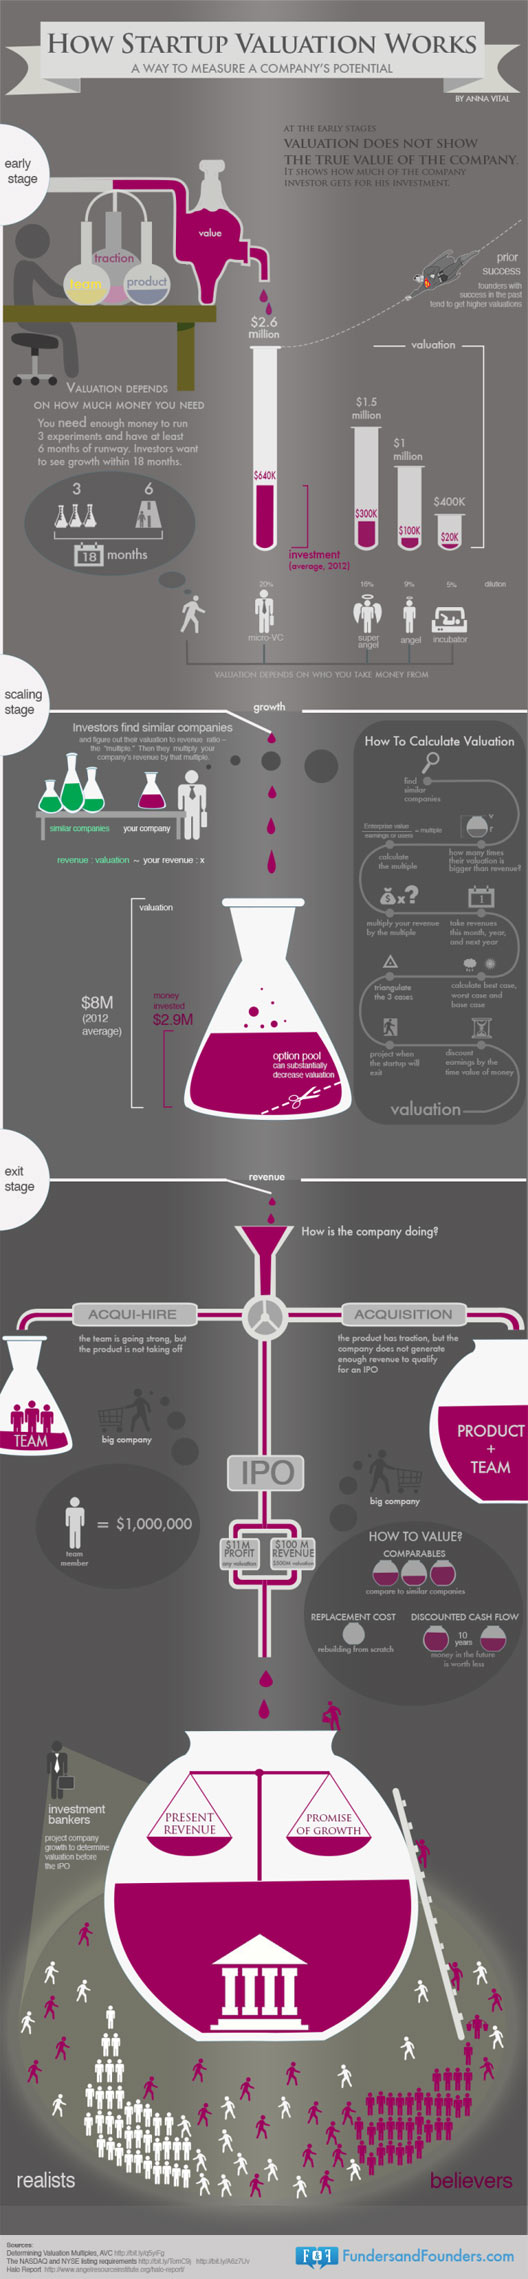 valuation, funding, startups, startup tips, infographic